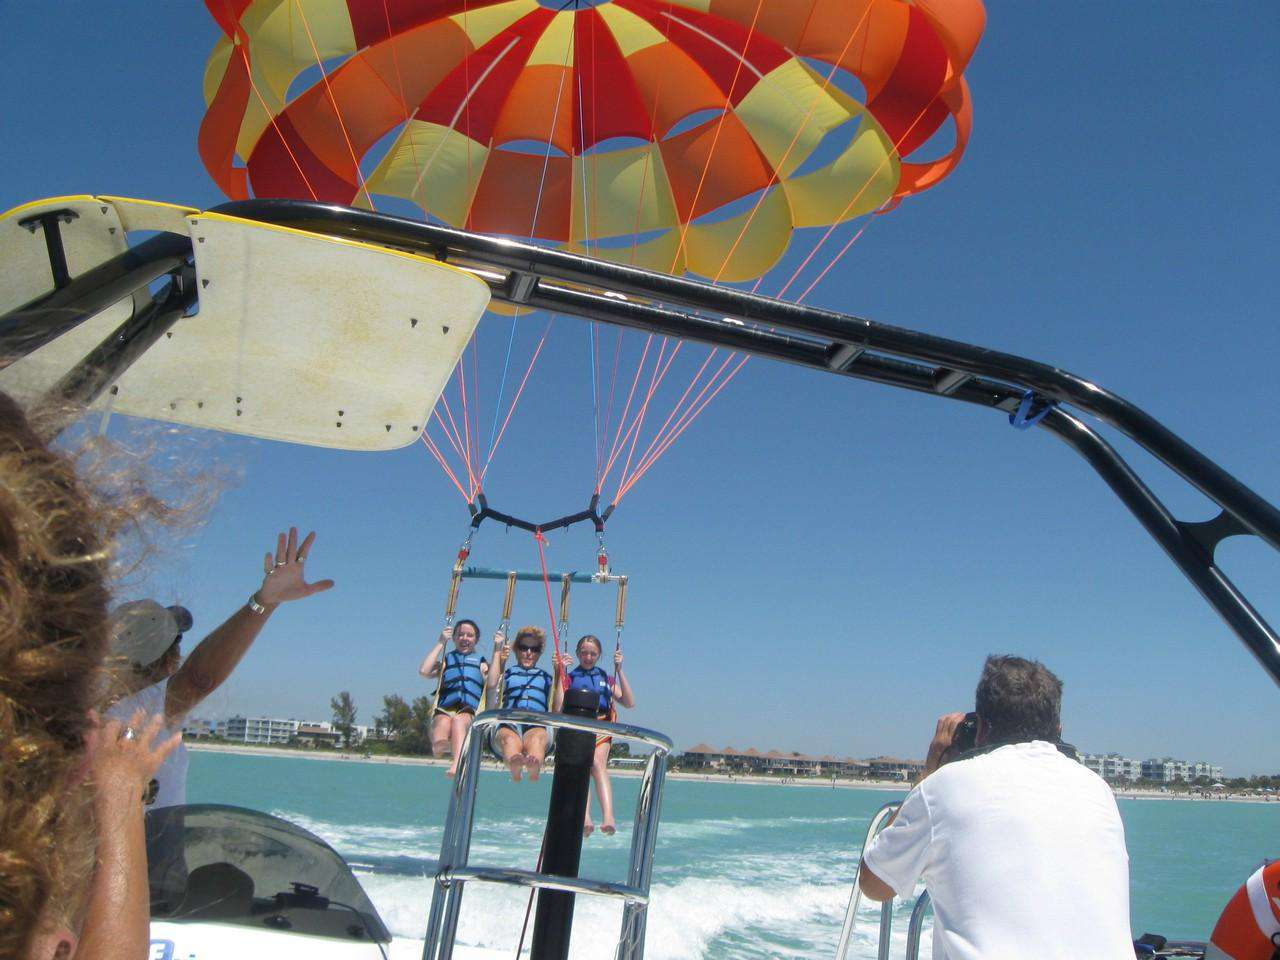 Activities - parasailing